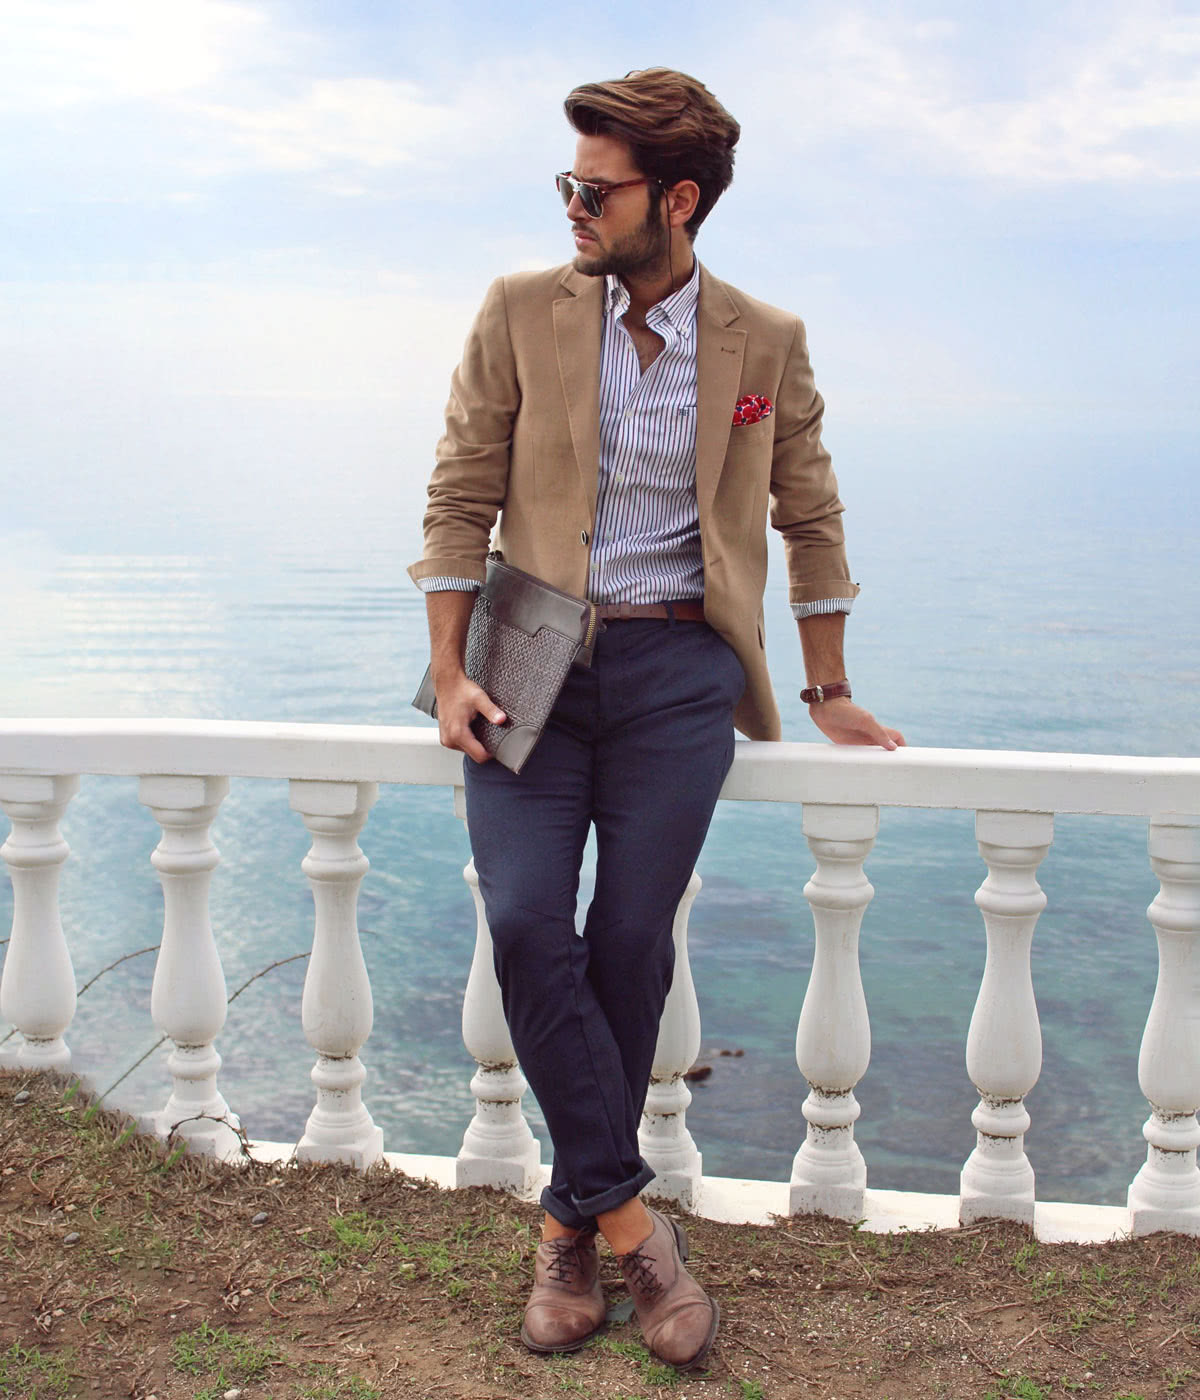 smart casual dress code men summer style - Luxe Digital